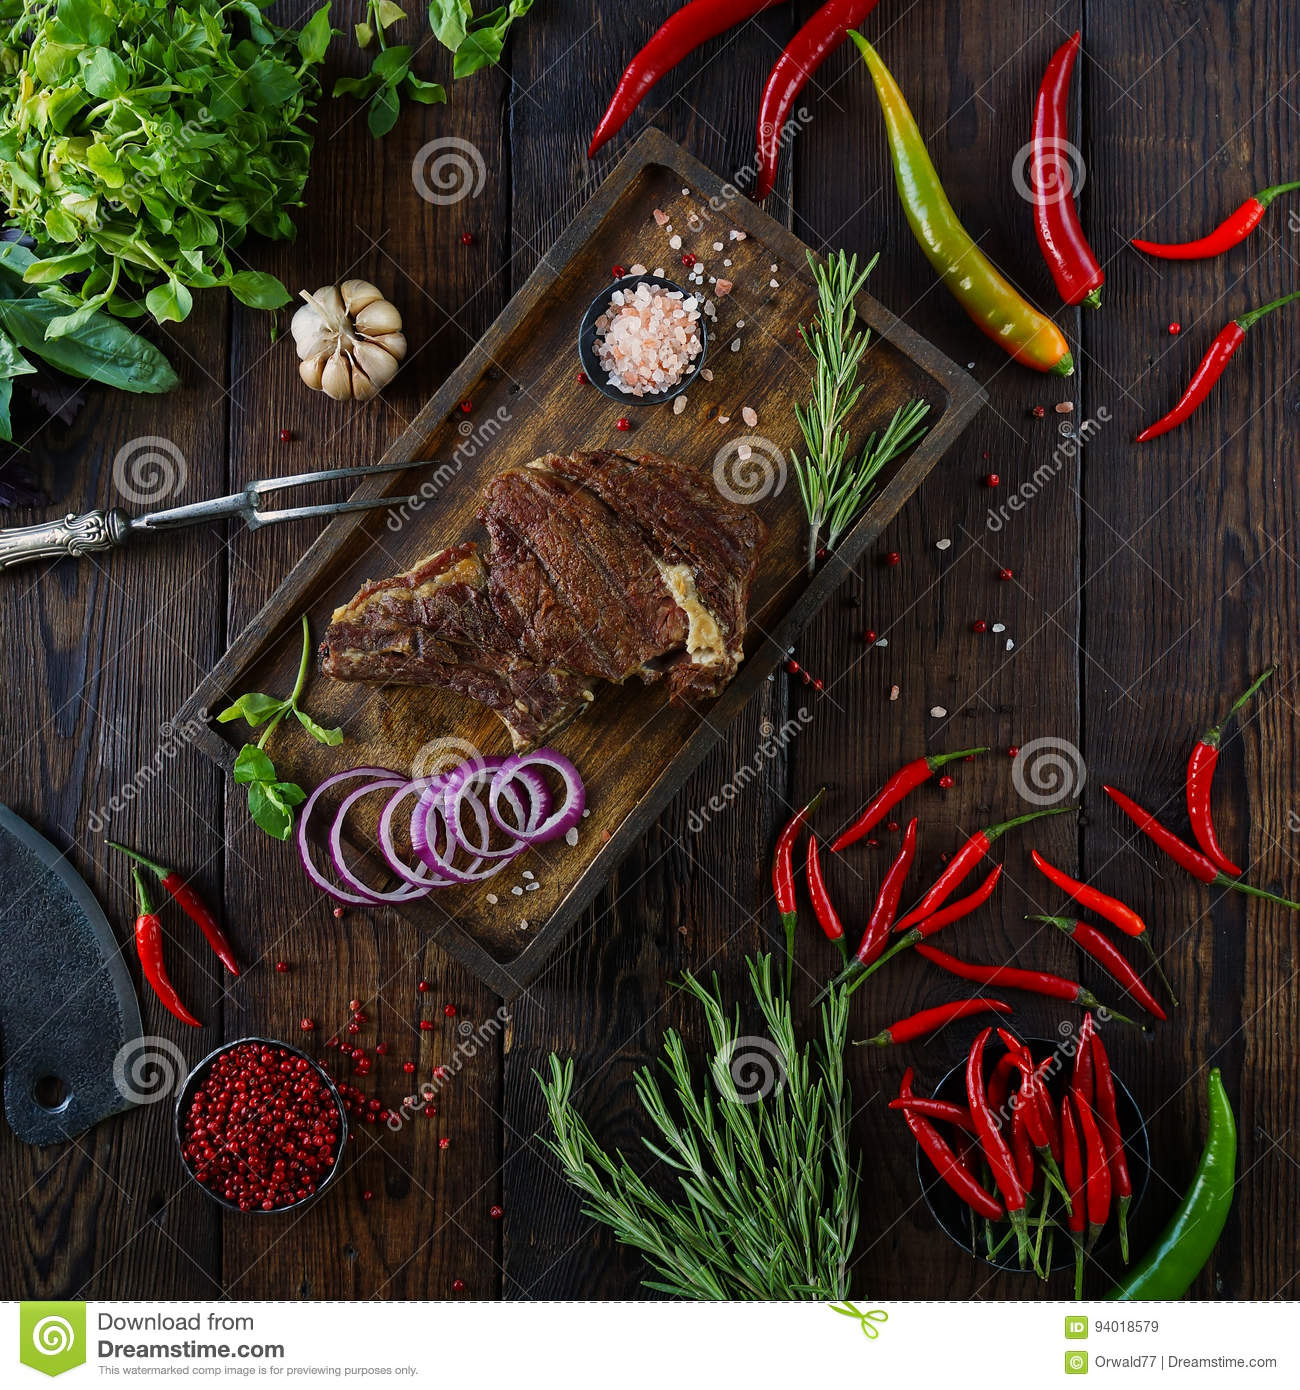 Roasted meat with onions, garlic, spices, fresh herbs, red pepper and salt